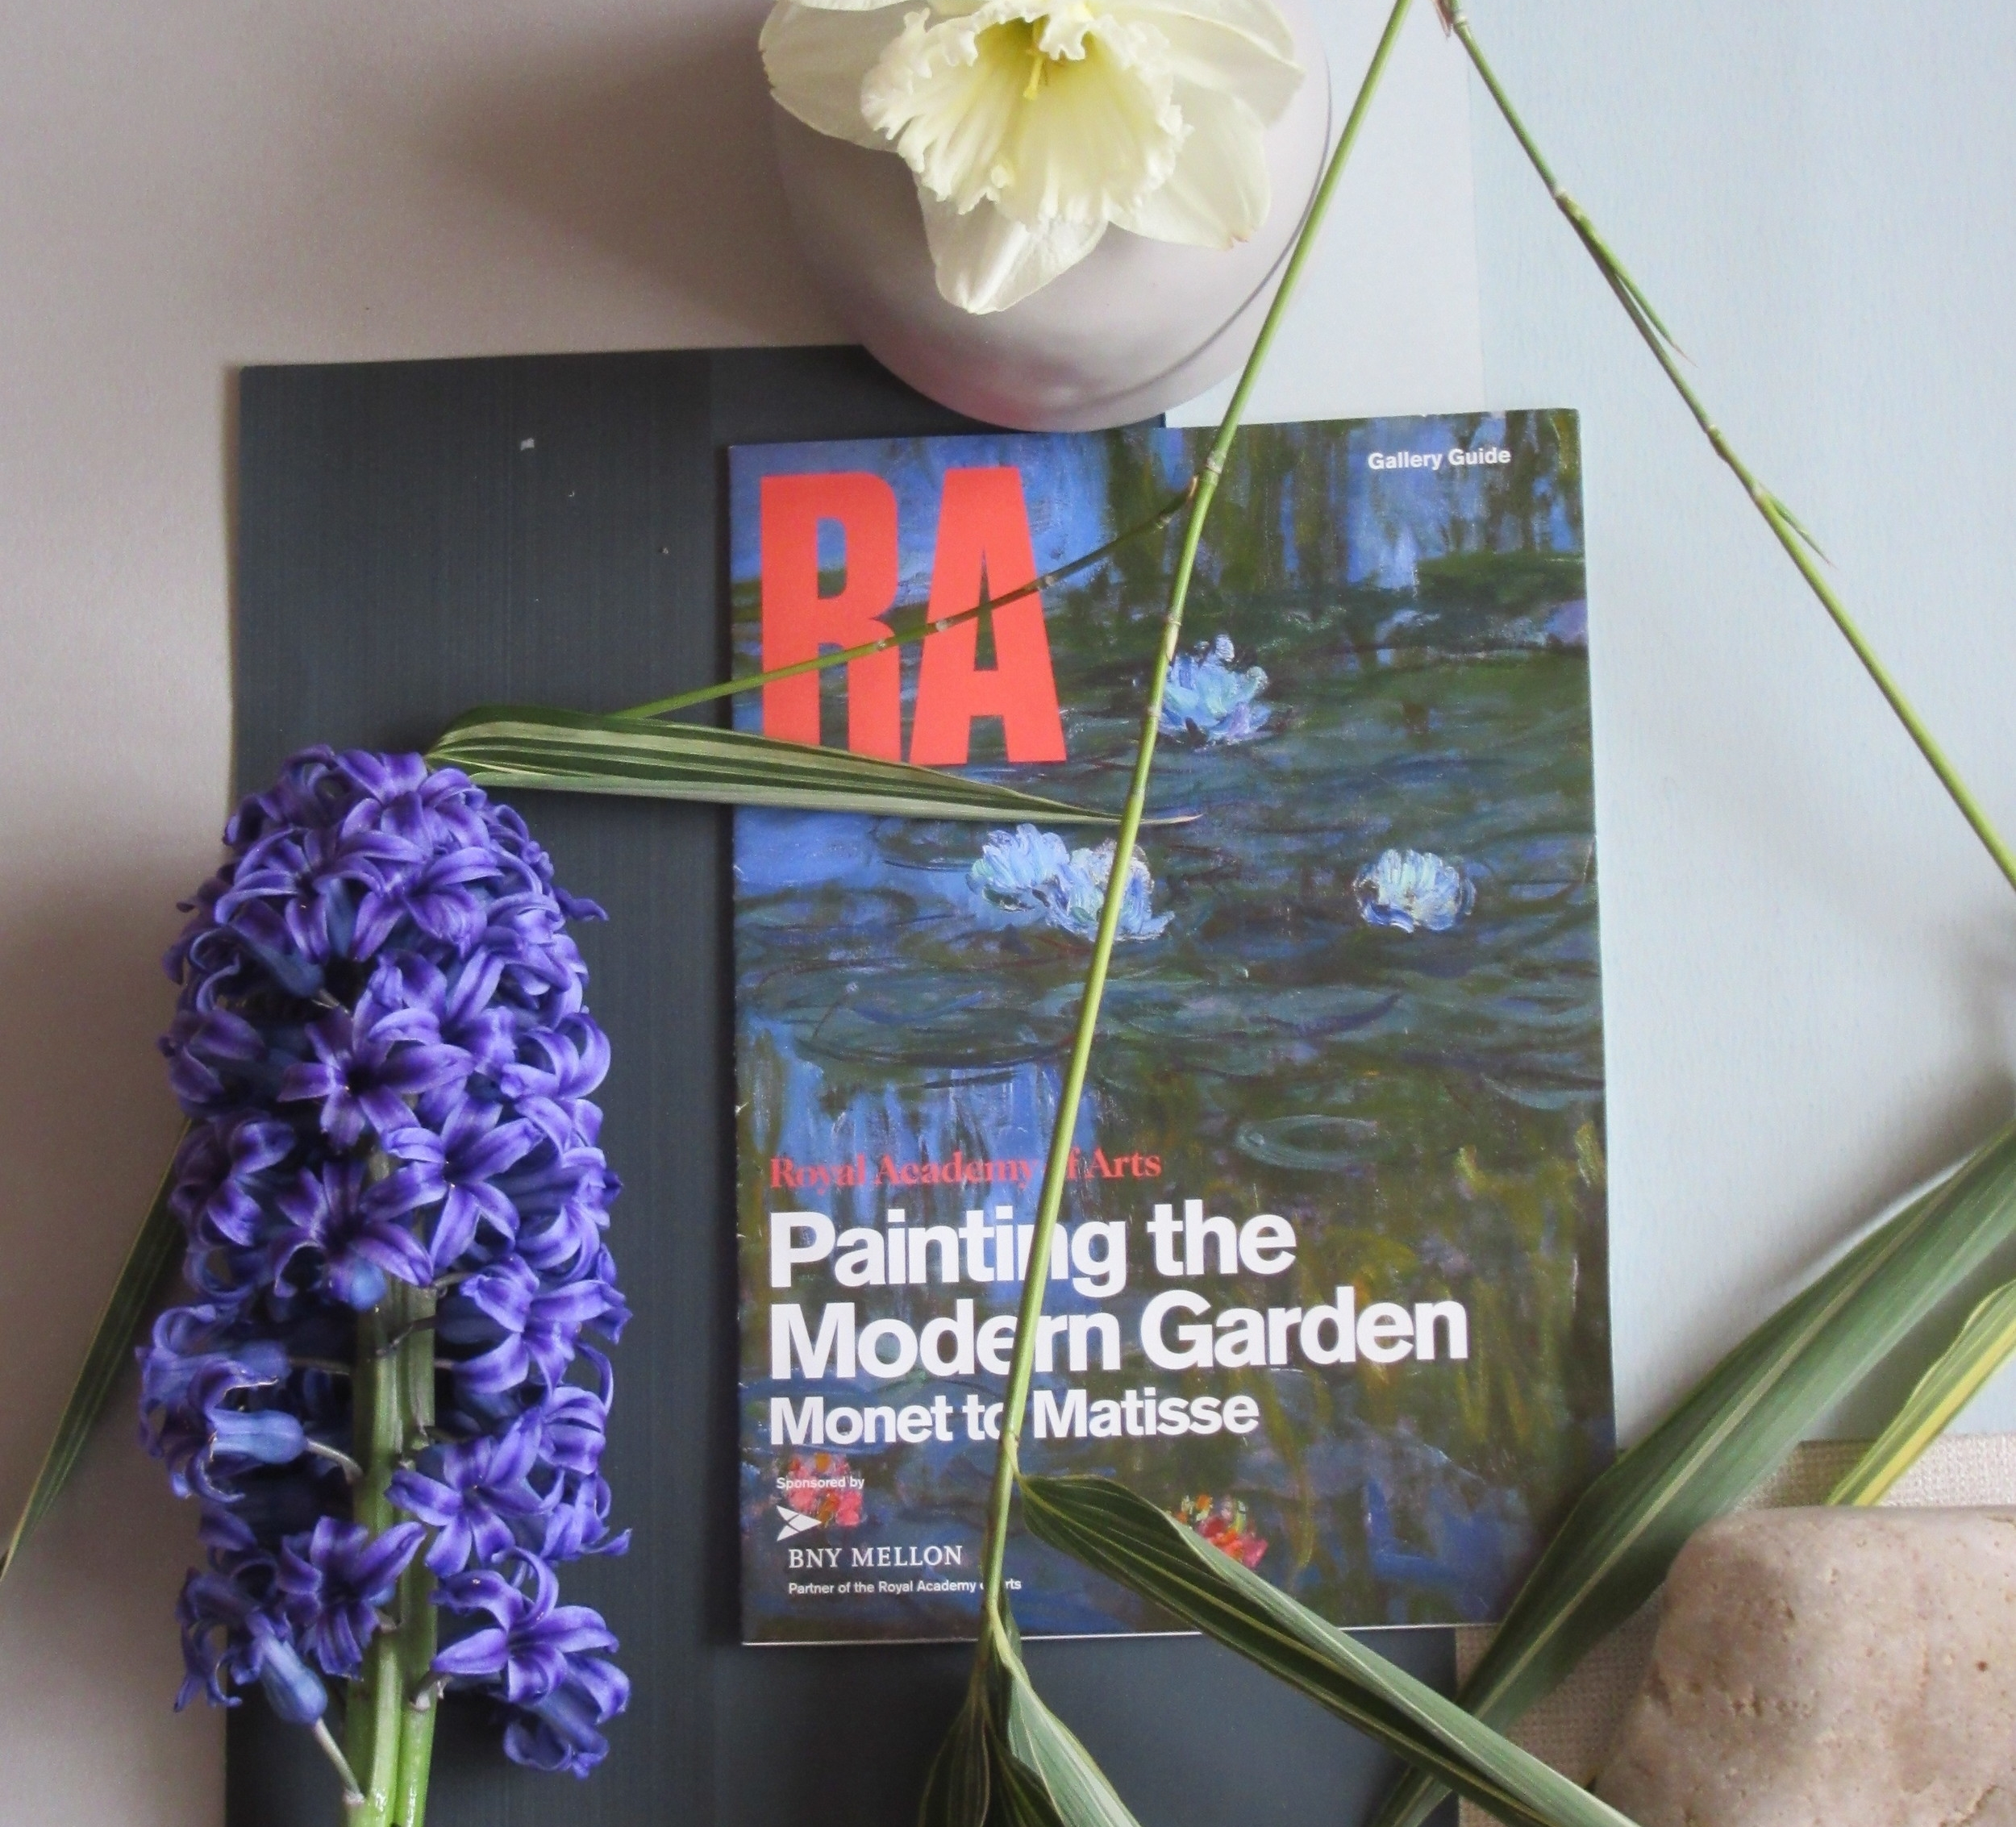 Royal Academy Exhibition Painting the Modern Garden